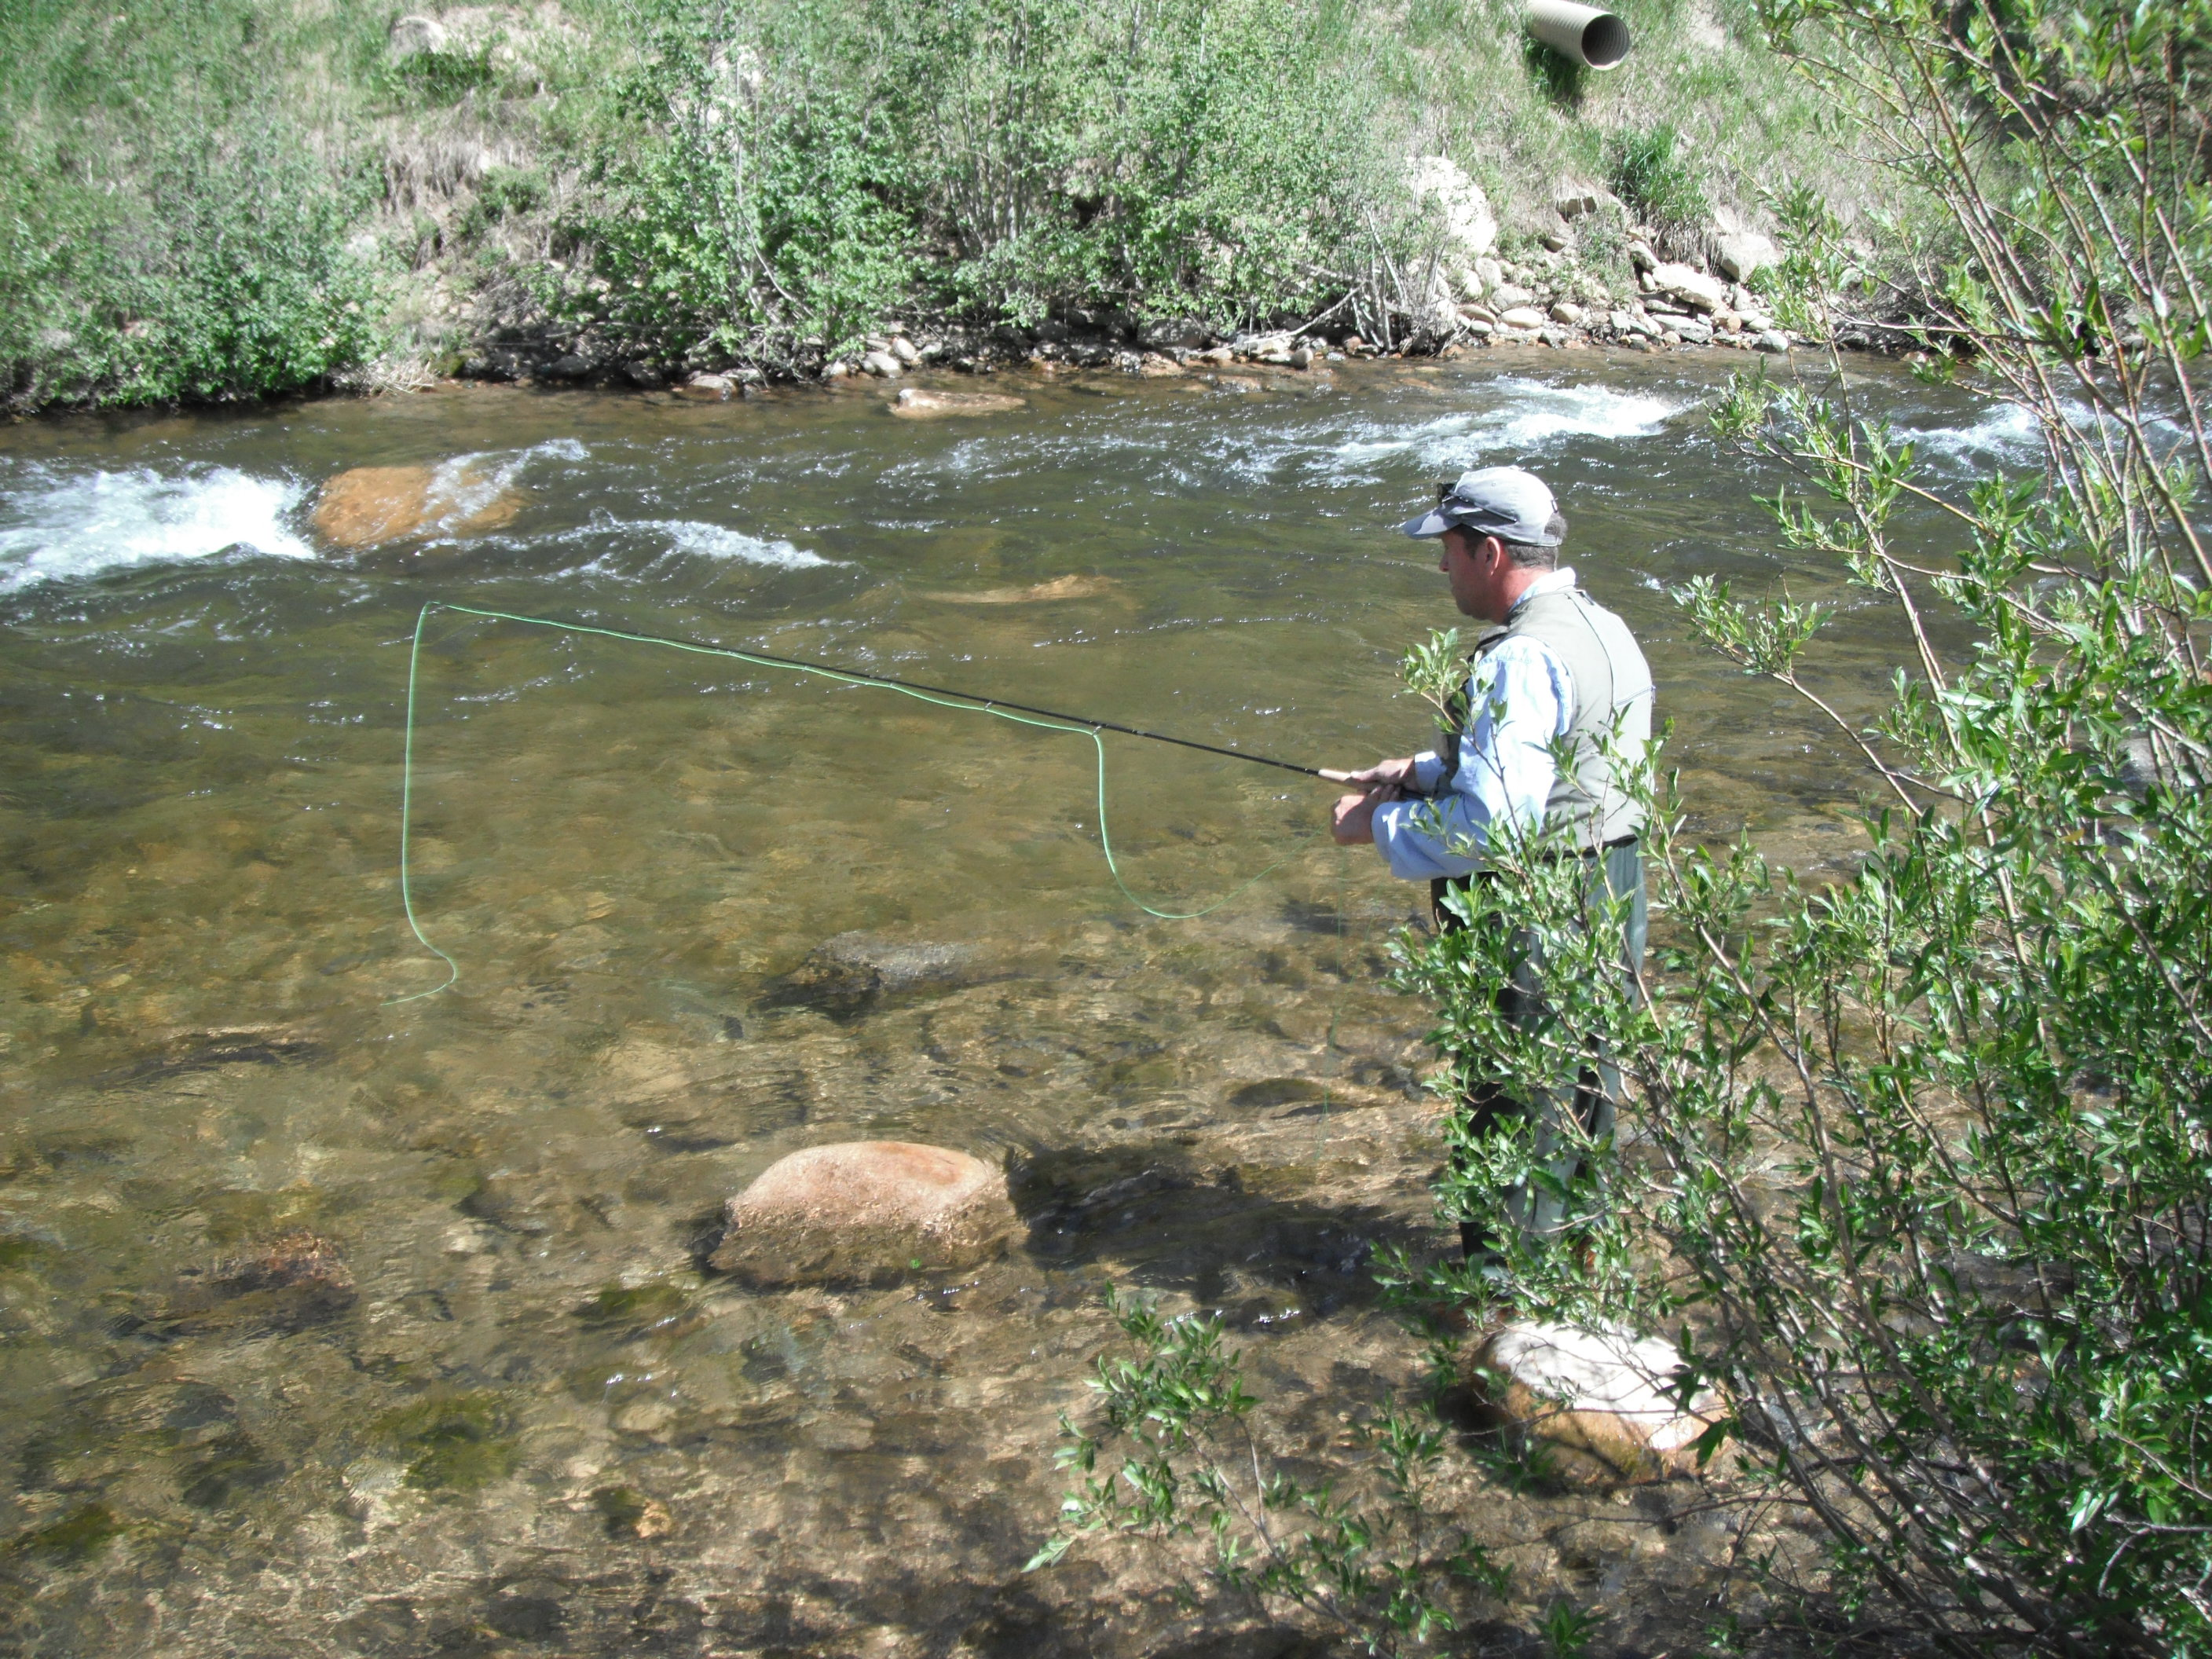 Colorado fly fishing reports guided fishing trip report for Colorado river fishing report